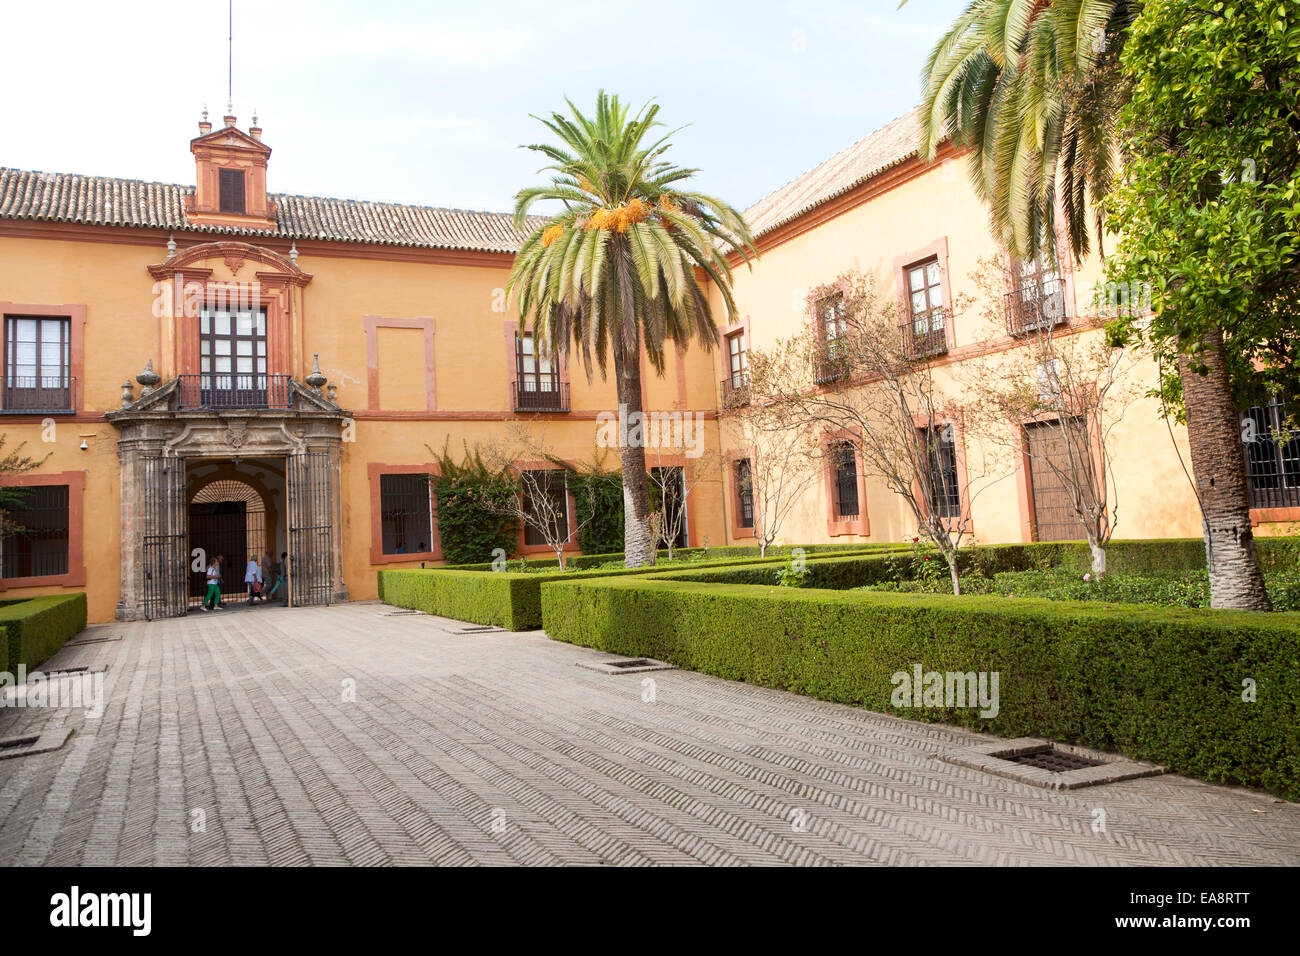 Patio Del Crucero And Palace Of King Carlos The Fifth, Alcazar Palaces,  Seville, Spain